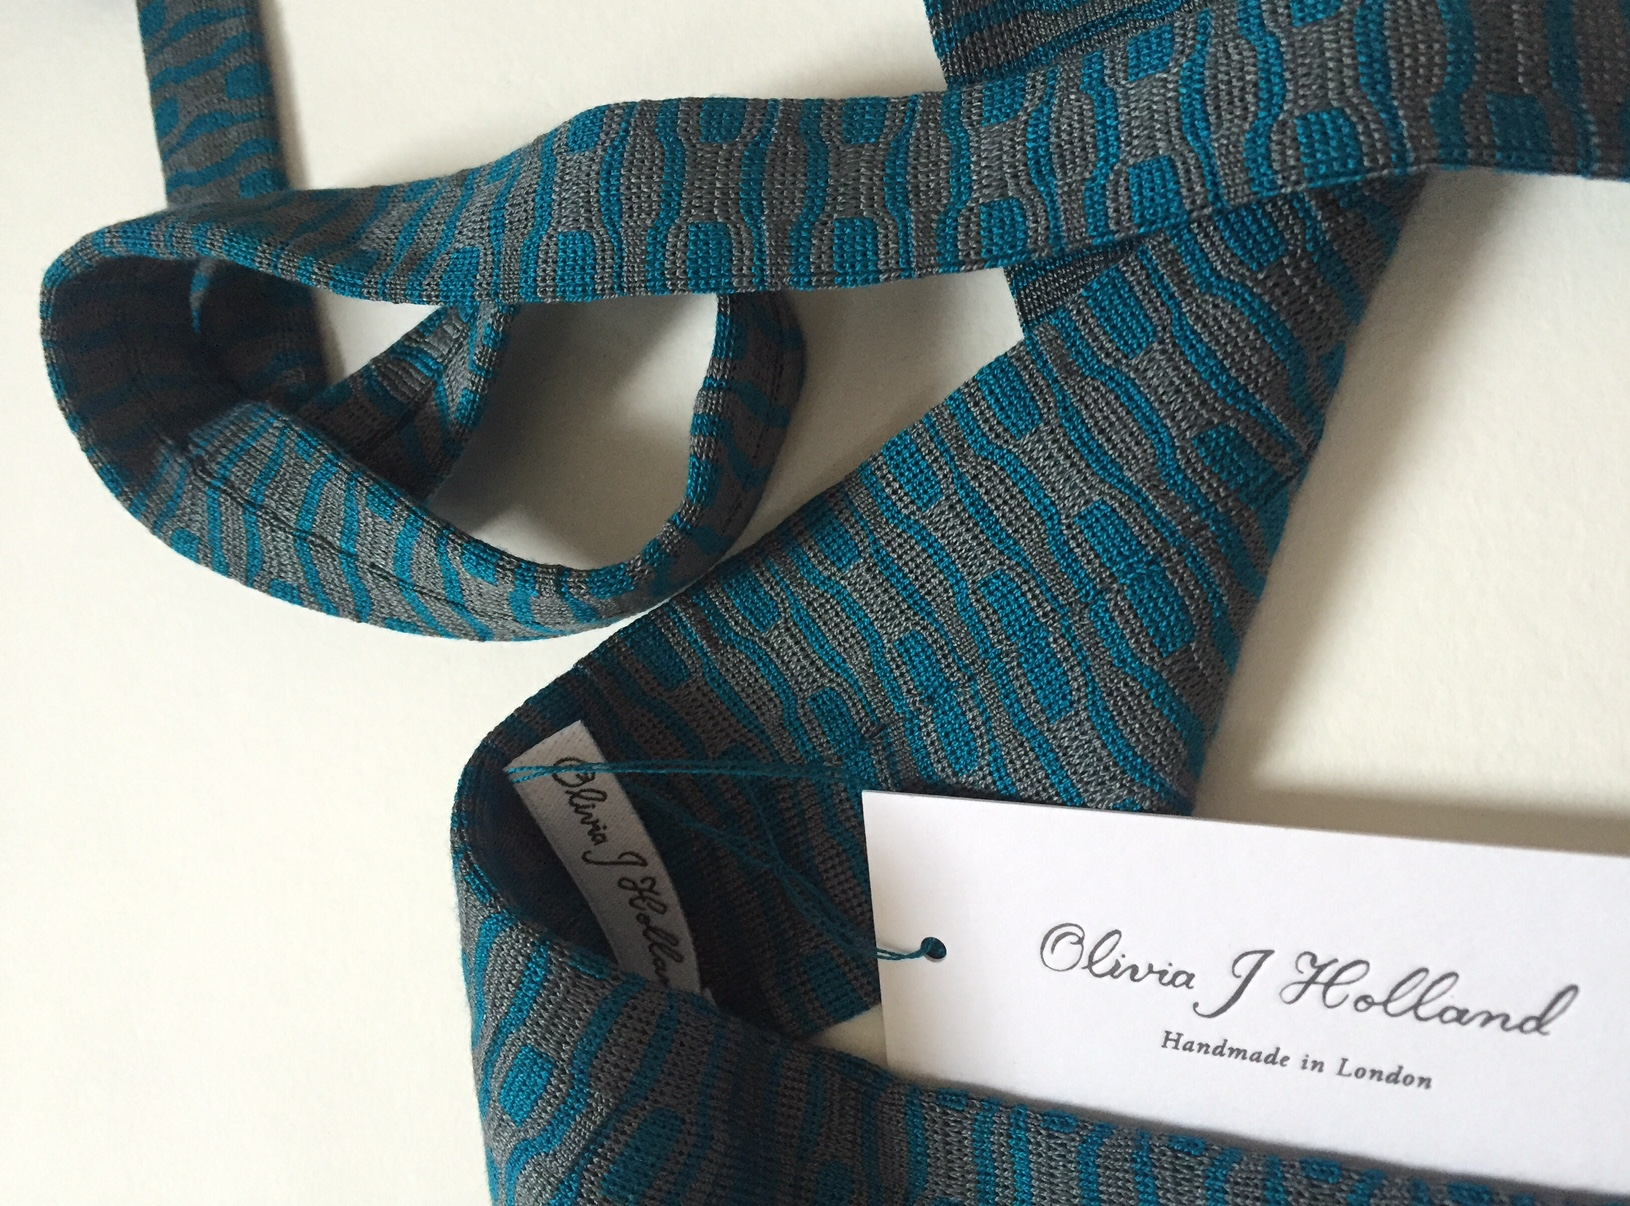 100% Silk Knitted Tie for a wedding guest.